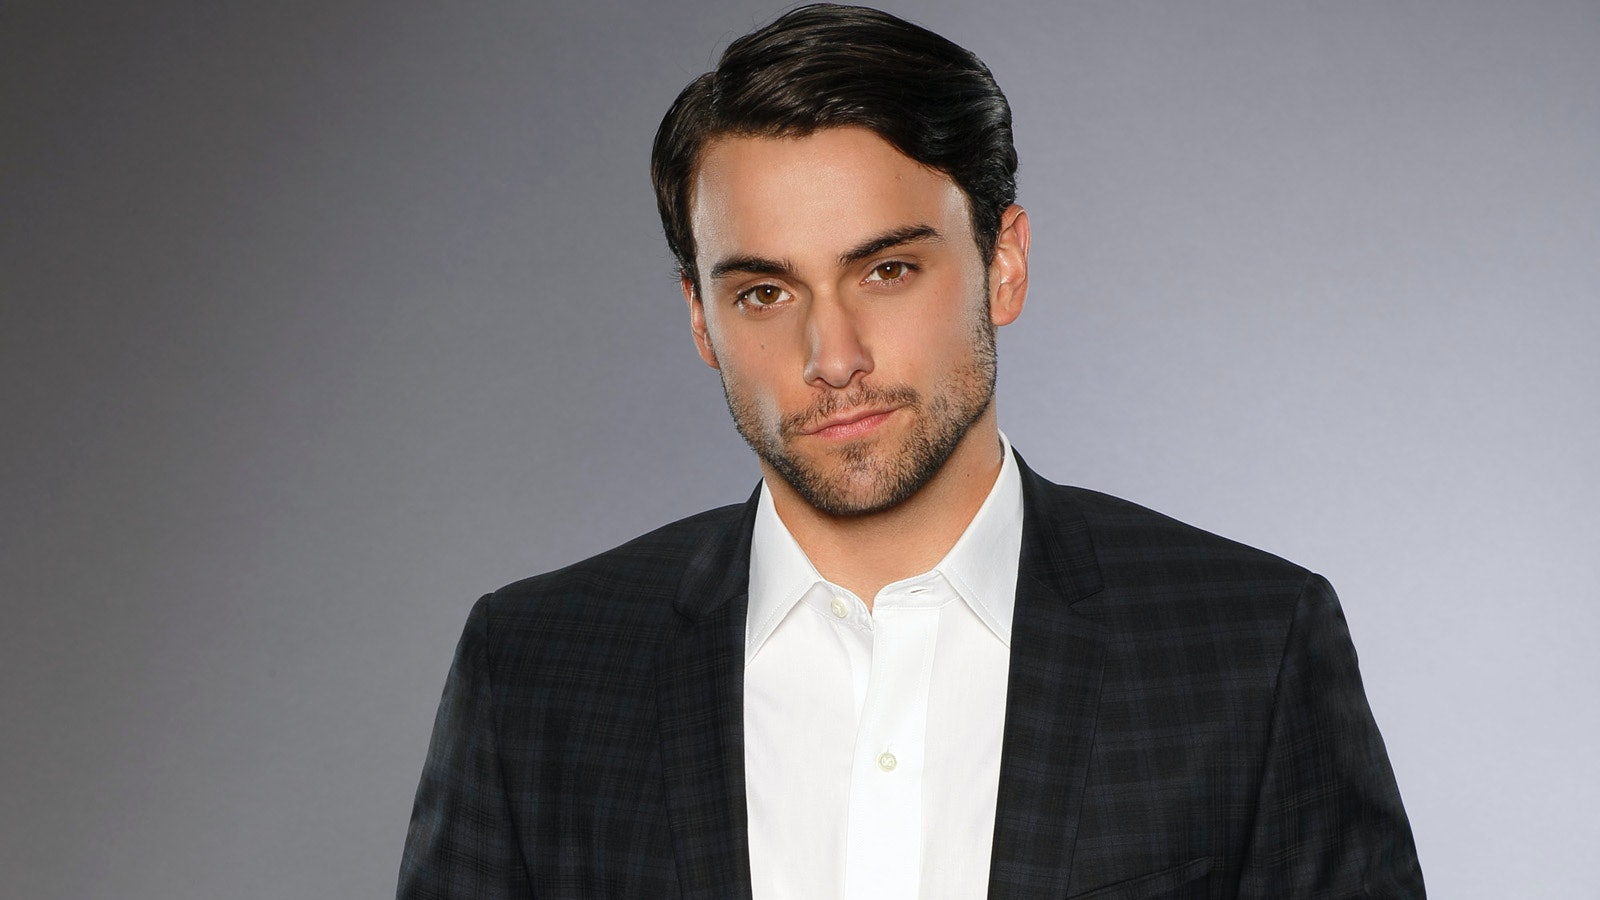 How to get away with murders connor may be a creep but hes an how to get away with murders connor may be a creep but hes an important character to have on network tv ccuart Image collections